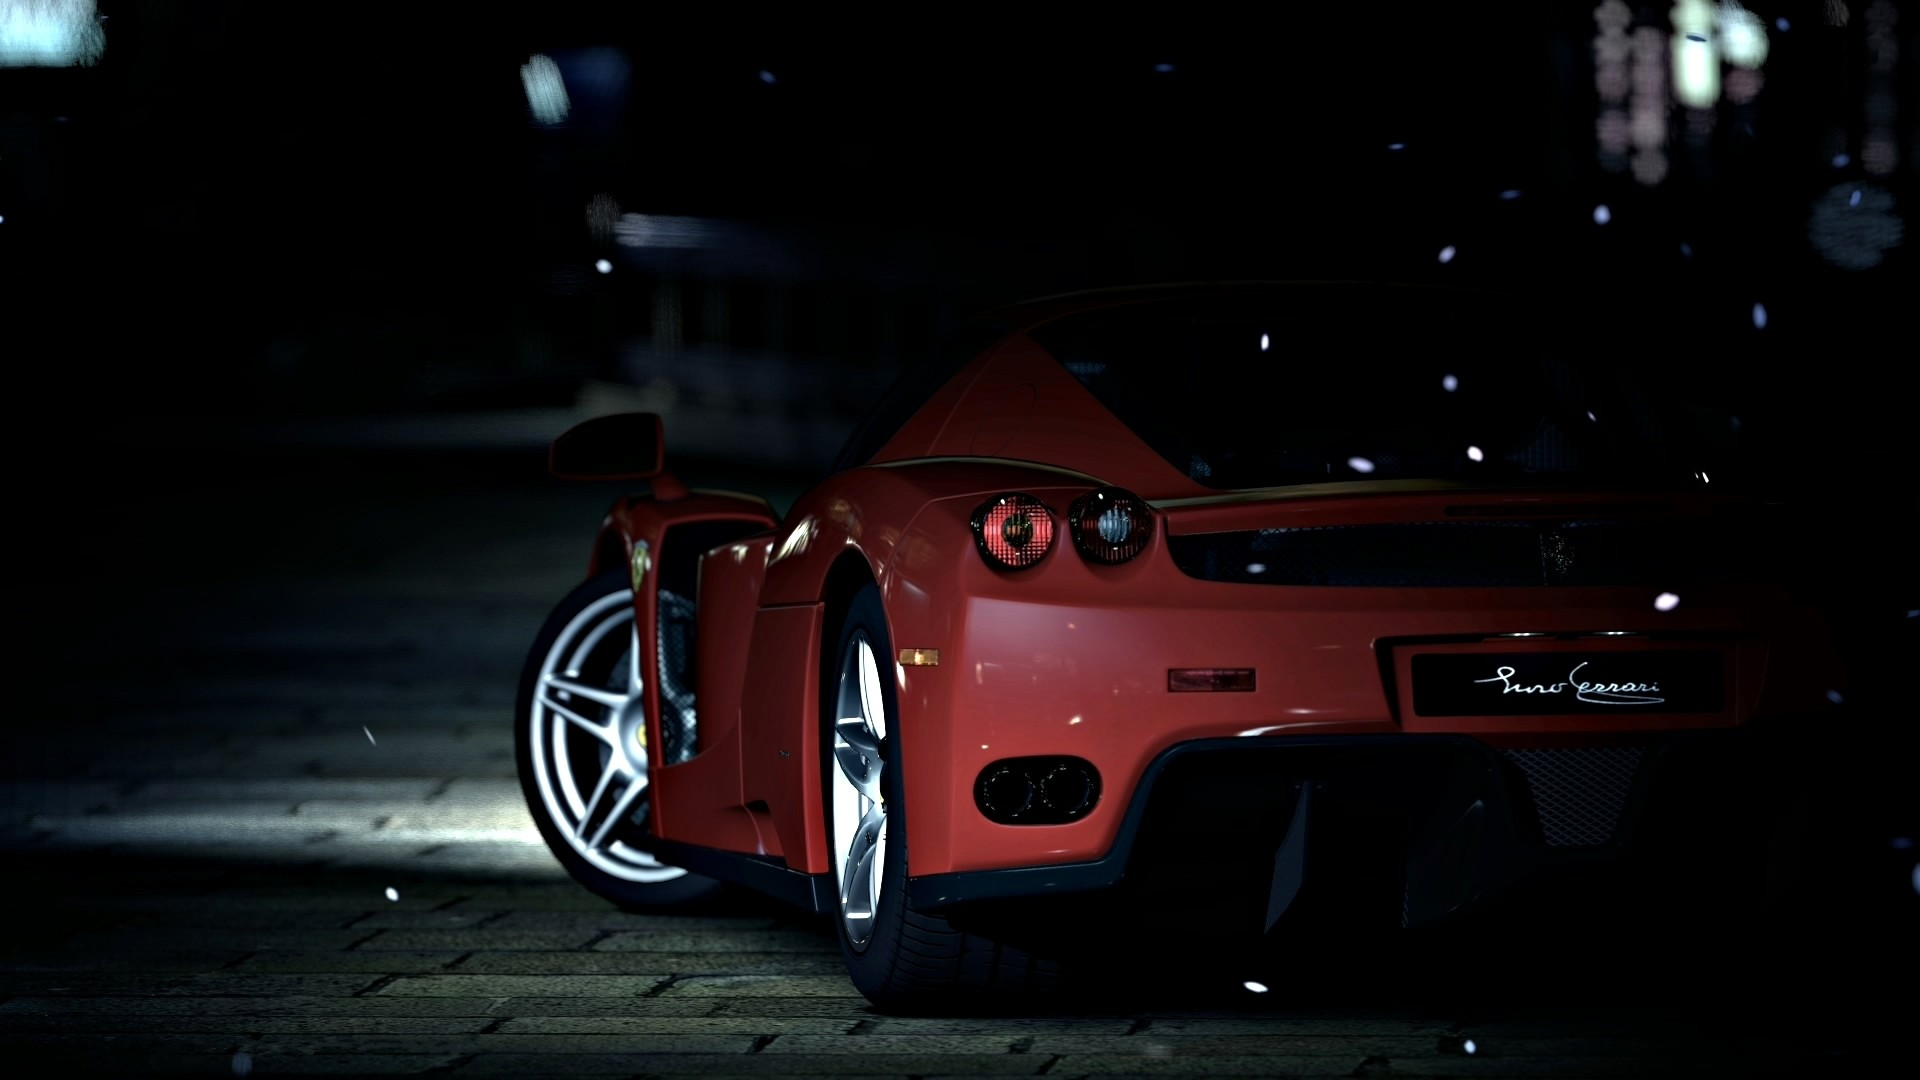 Red Ferrari in the night, rear view